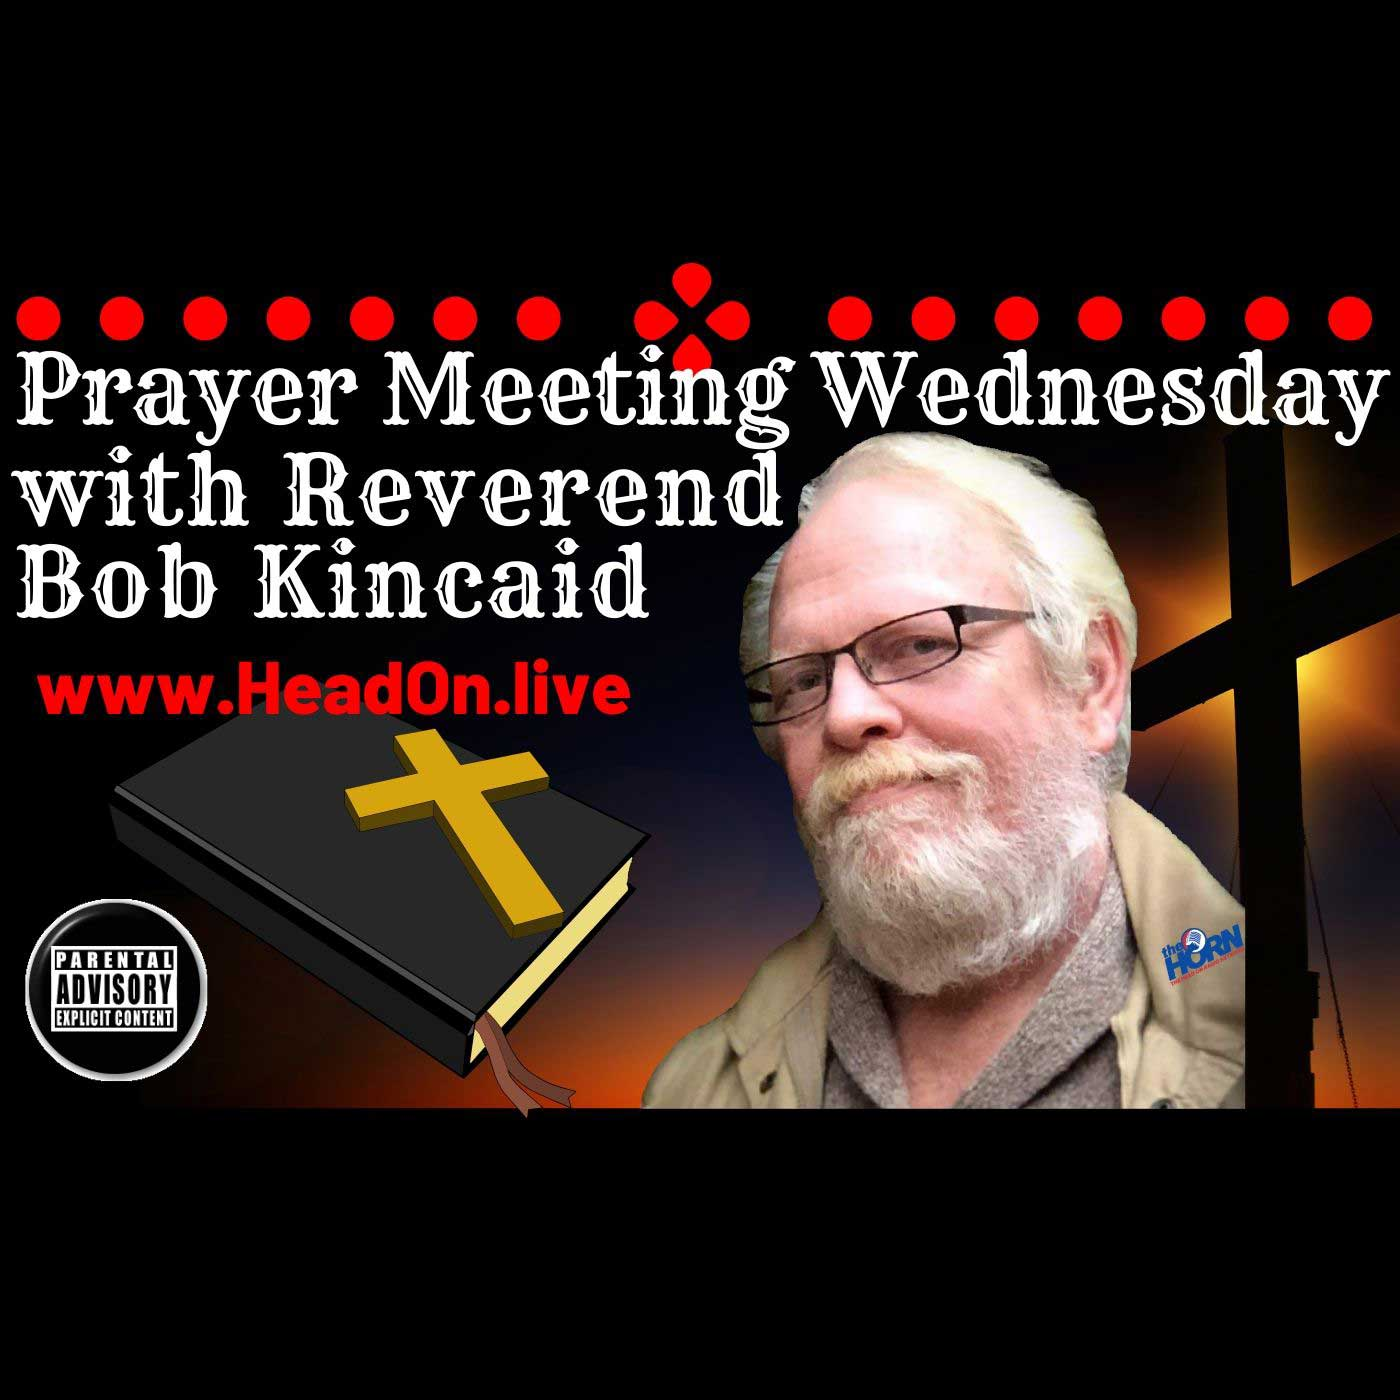 Prayer Meetinarona Wednesday, Head-ON With Bob Kincaid, 1 July 2020